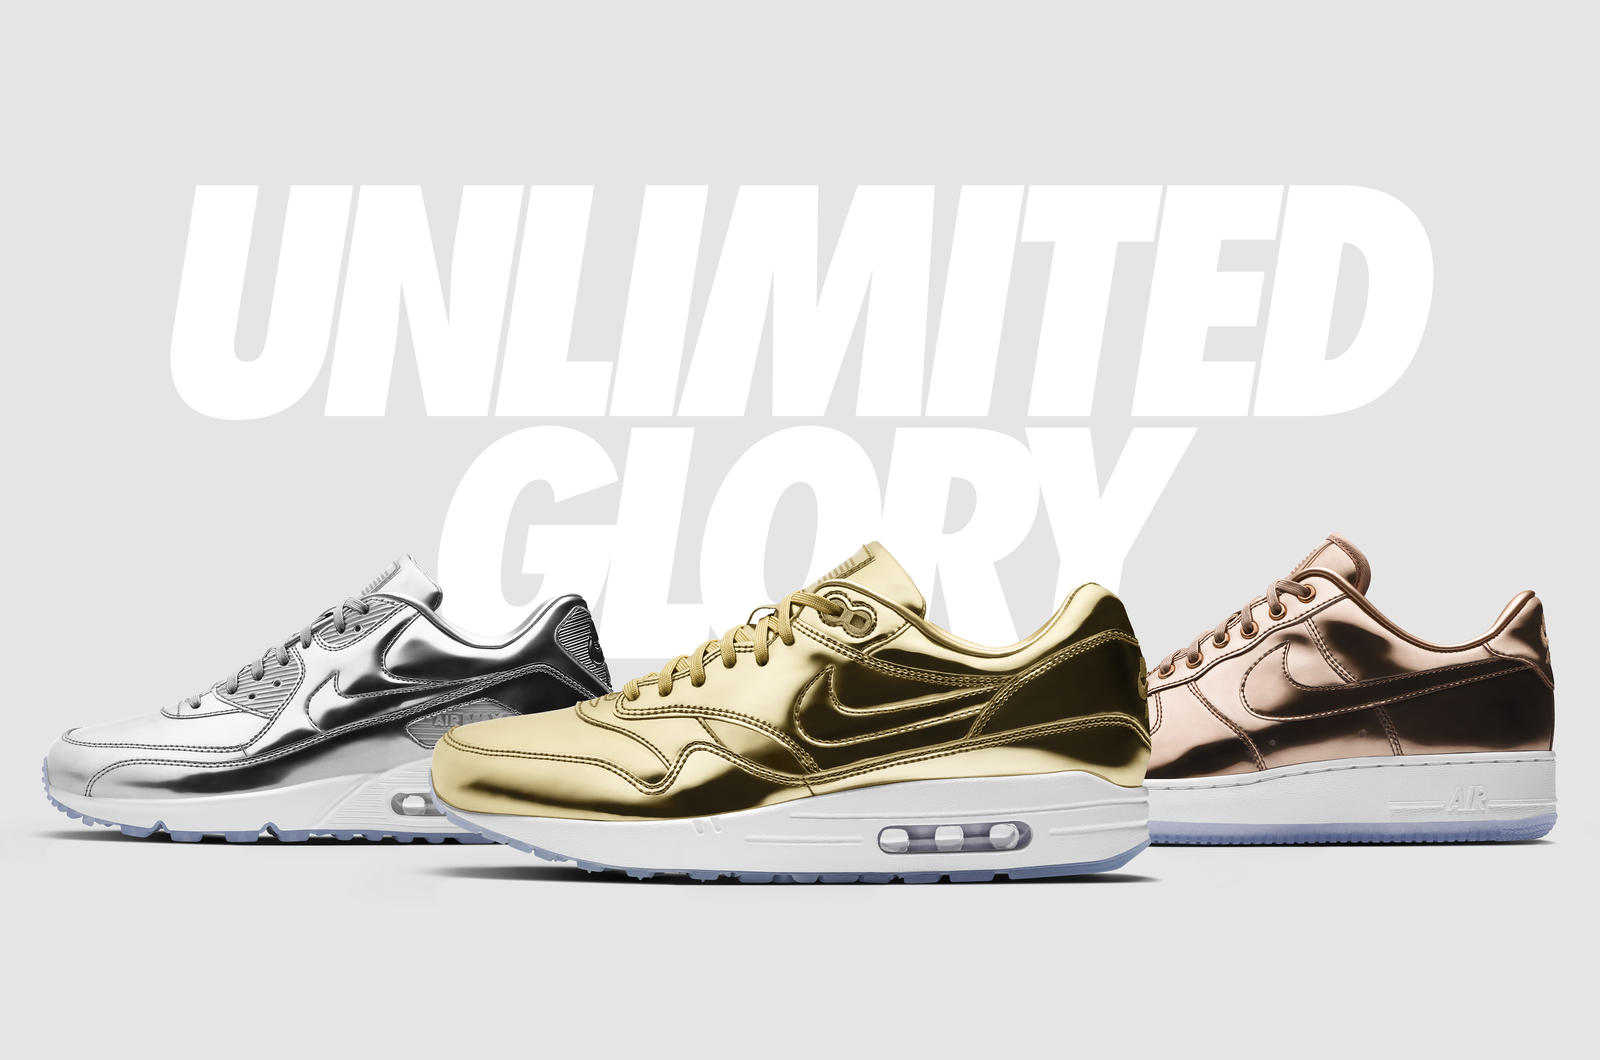 0483972c8022 NIKEiD Unlimited Glory Pack